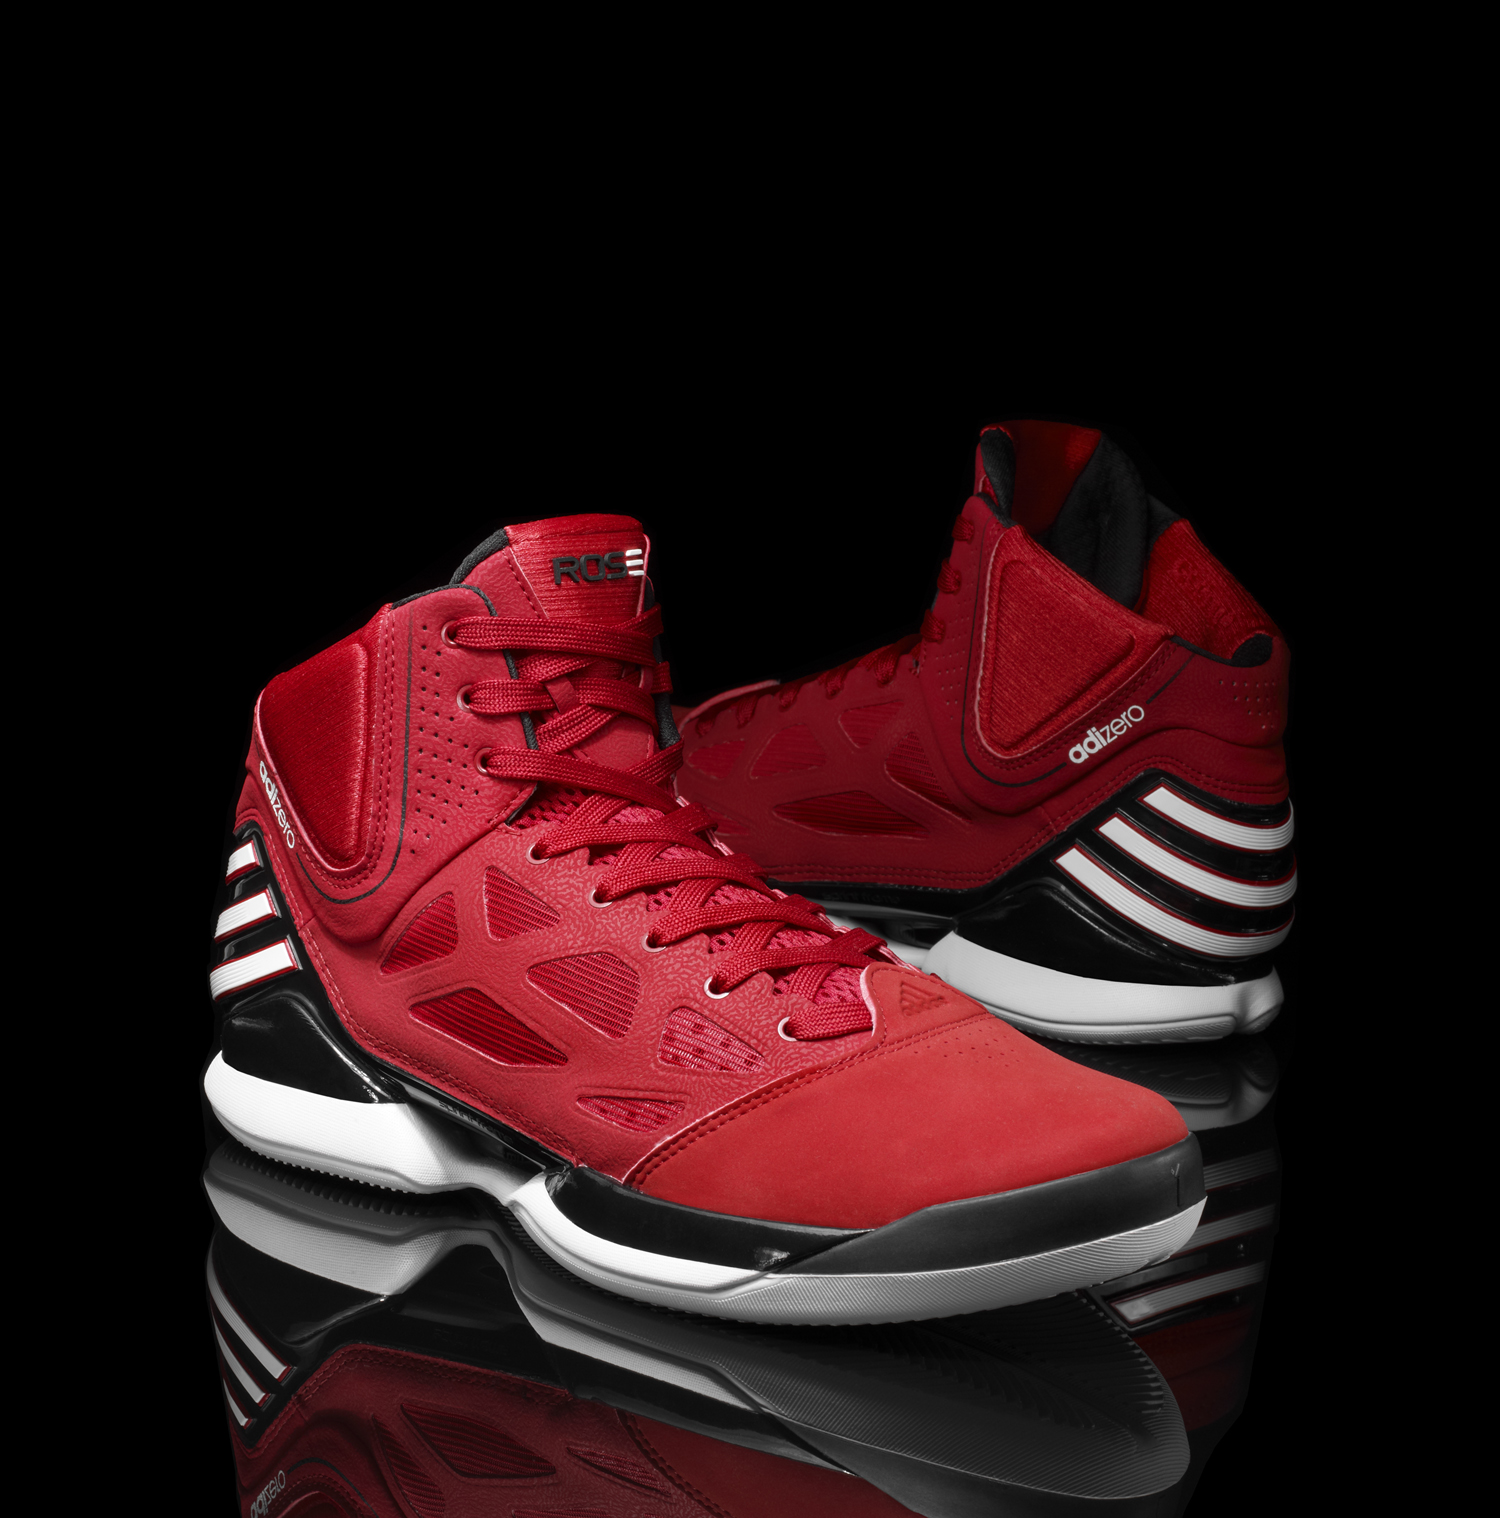 derrick rose shoes adizero 3 - photo #43